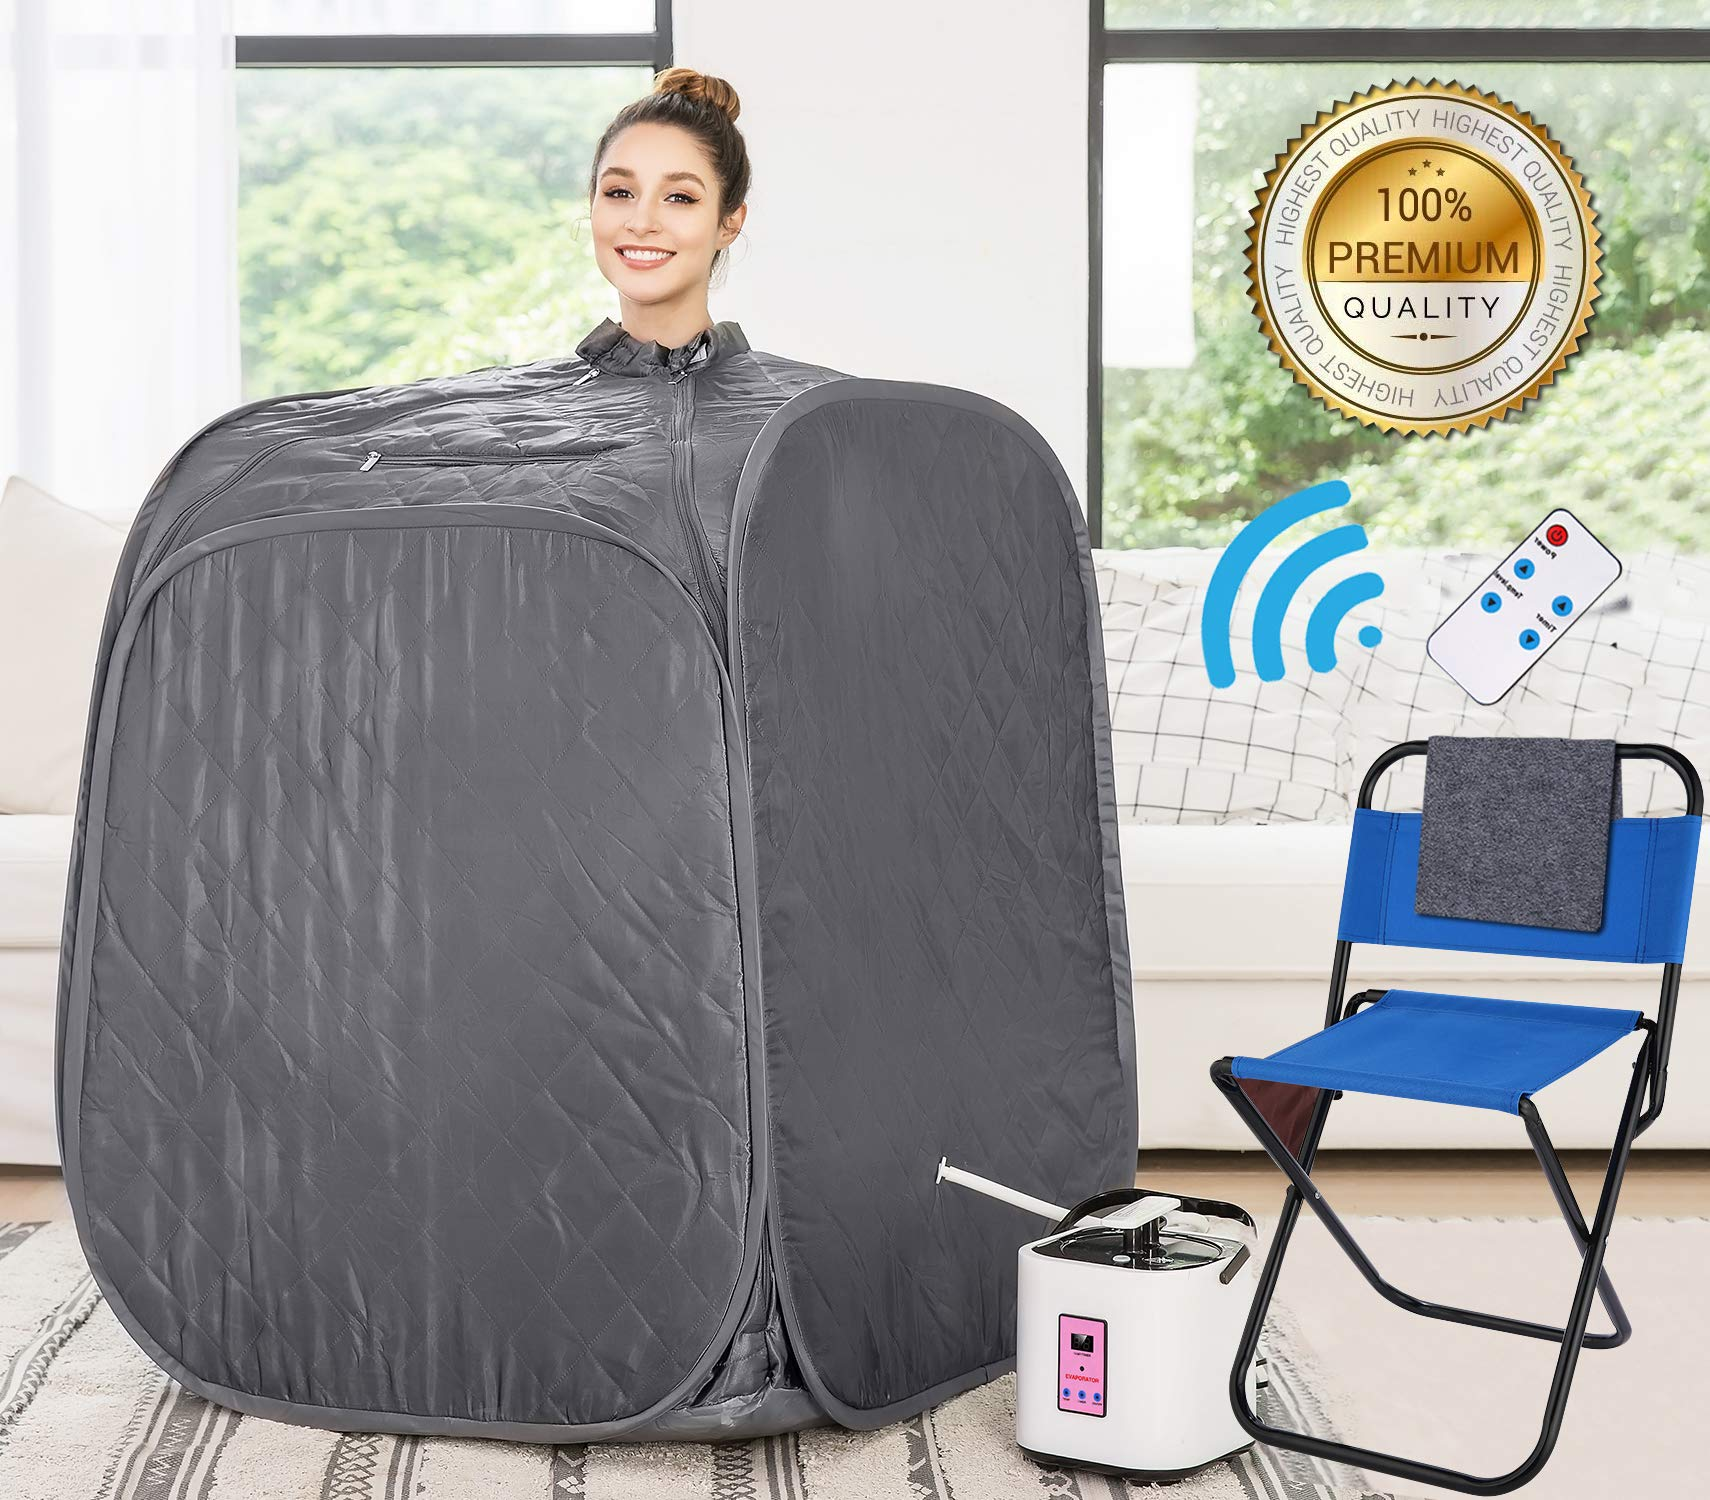 Himimi 2L Foldable Steam Sauna Portable Indoor Home Spa Weight Loss Detox with Chair Remote (Dark Silver)